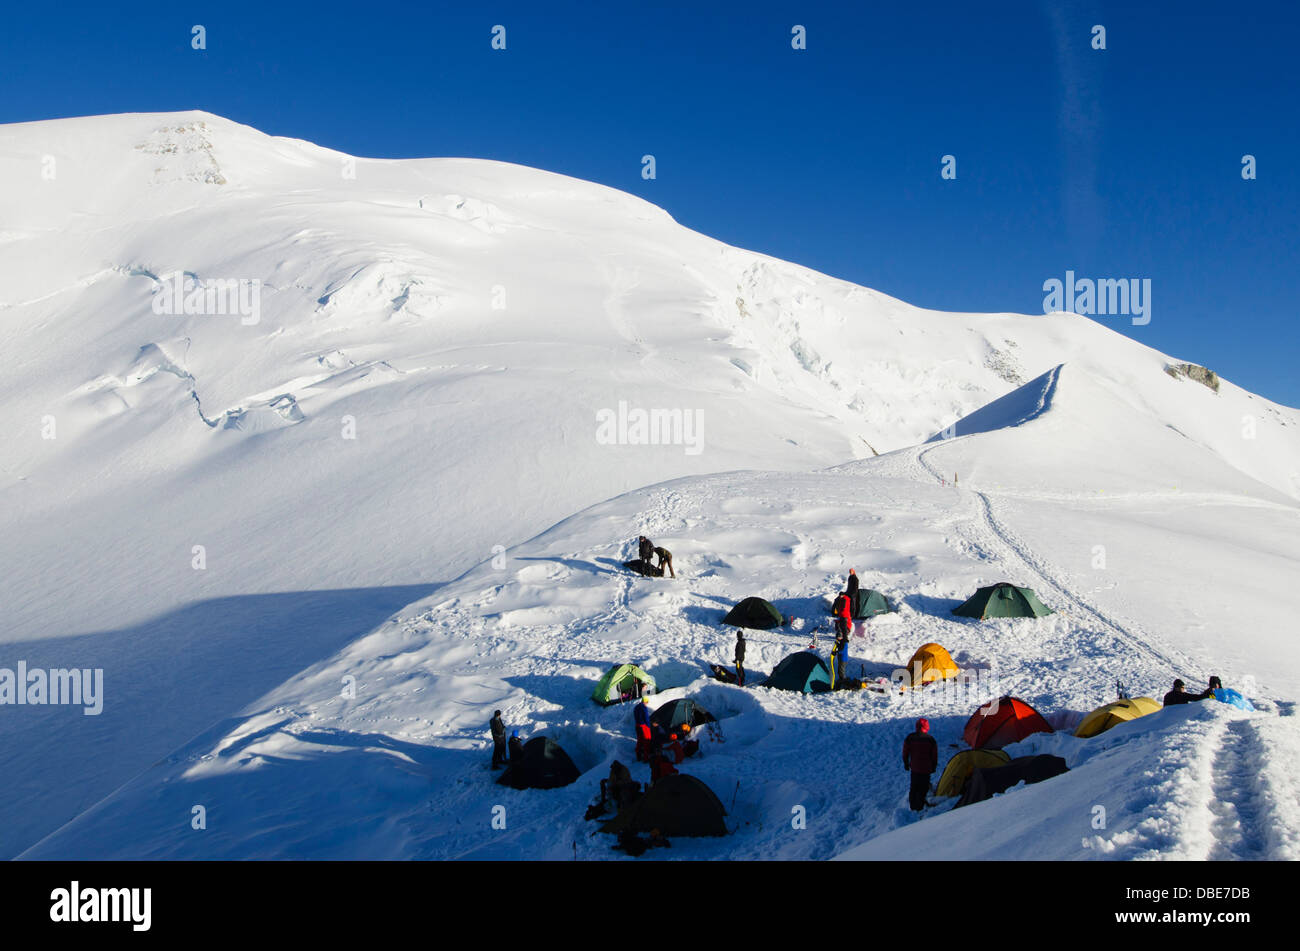 tents on Mt Blanc, French Alps, Haute-Savoie, France, Europe - Stock Image